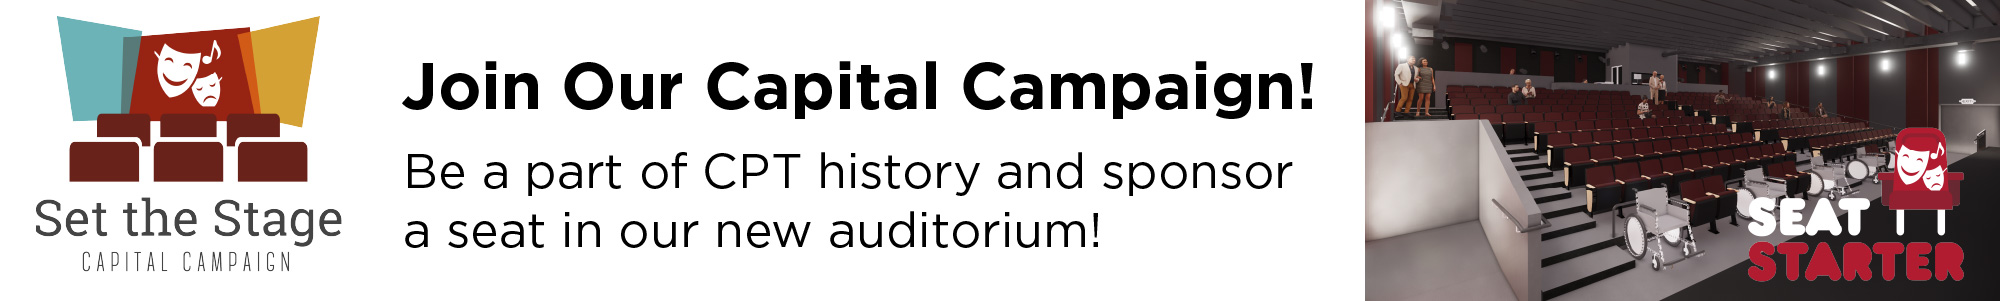 Be a part of CPT history and sponsor a seat for our new auditorium project!